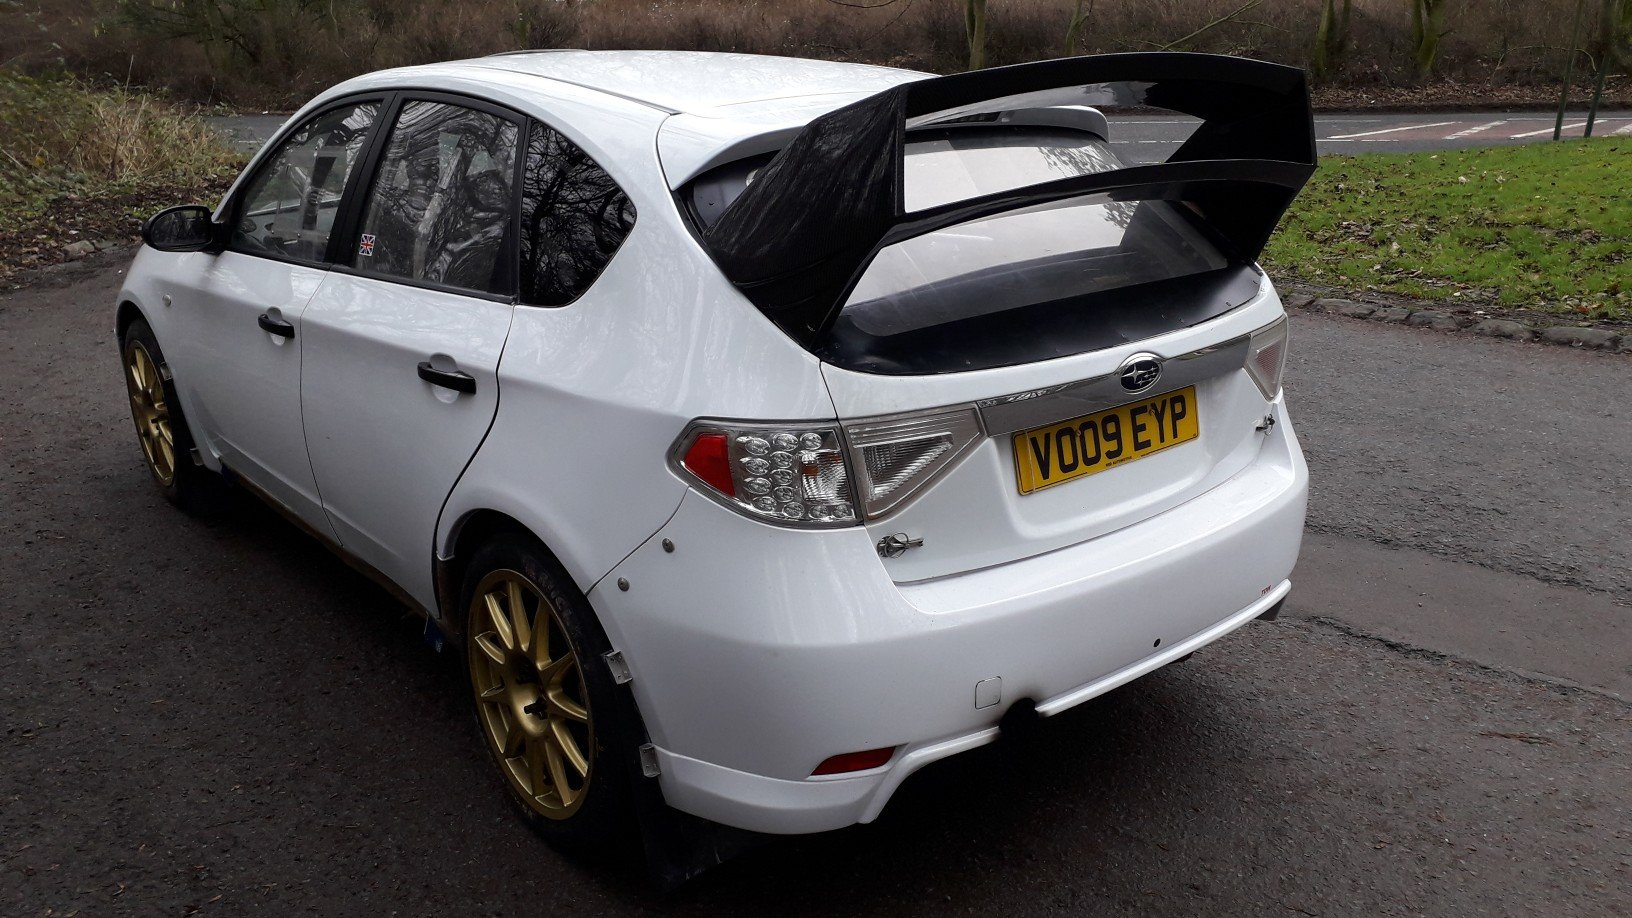 2009 subaru impreza n14 rally car full msa legal ready to rally  SOLD (picture 4 of 6)